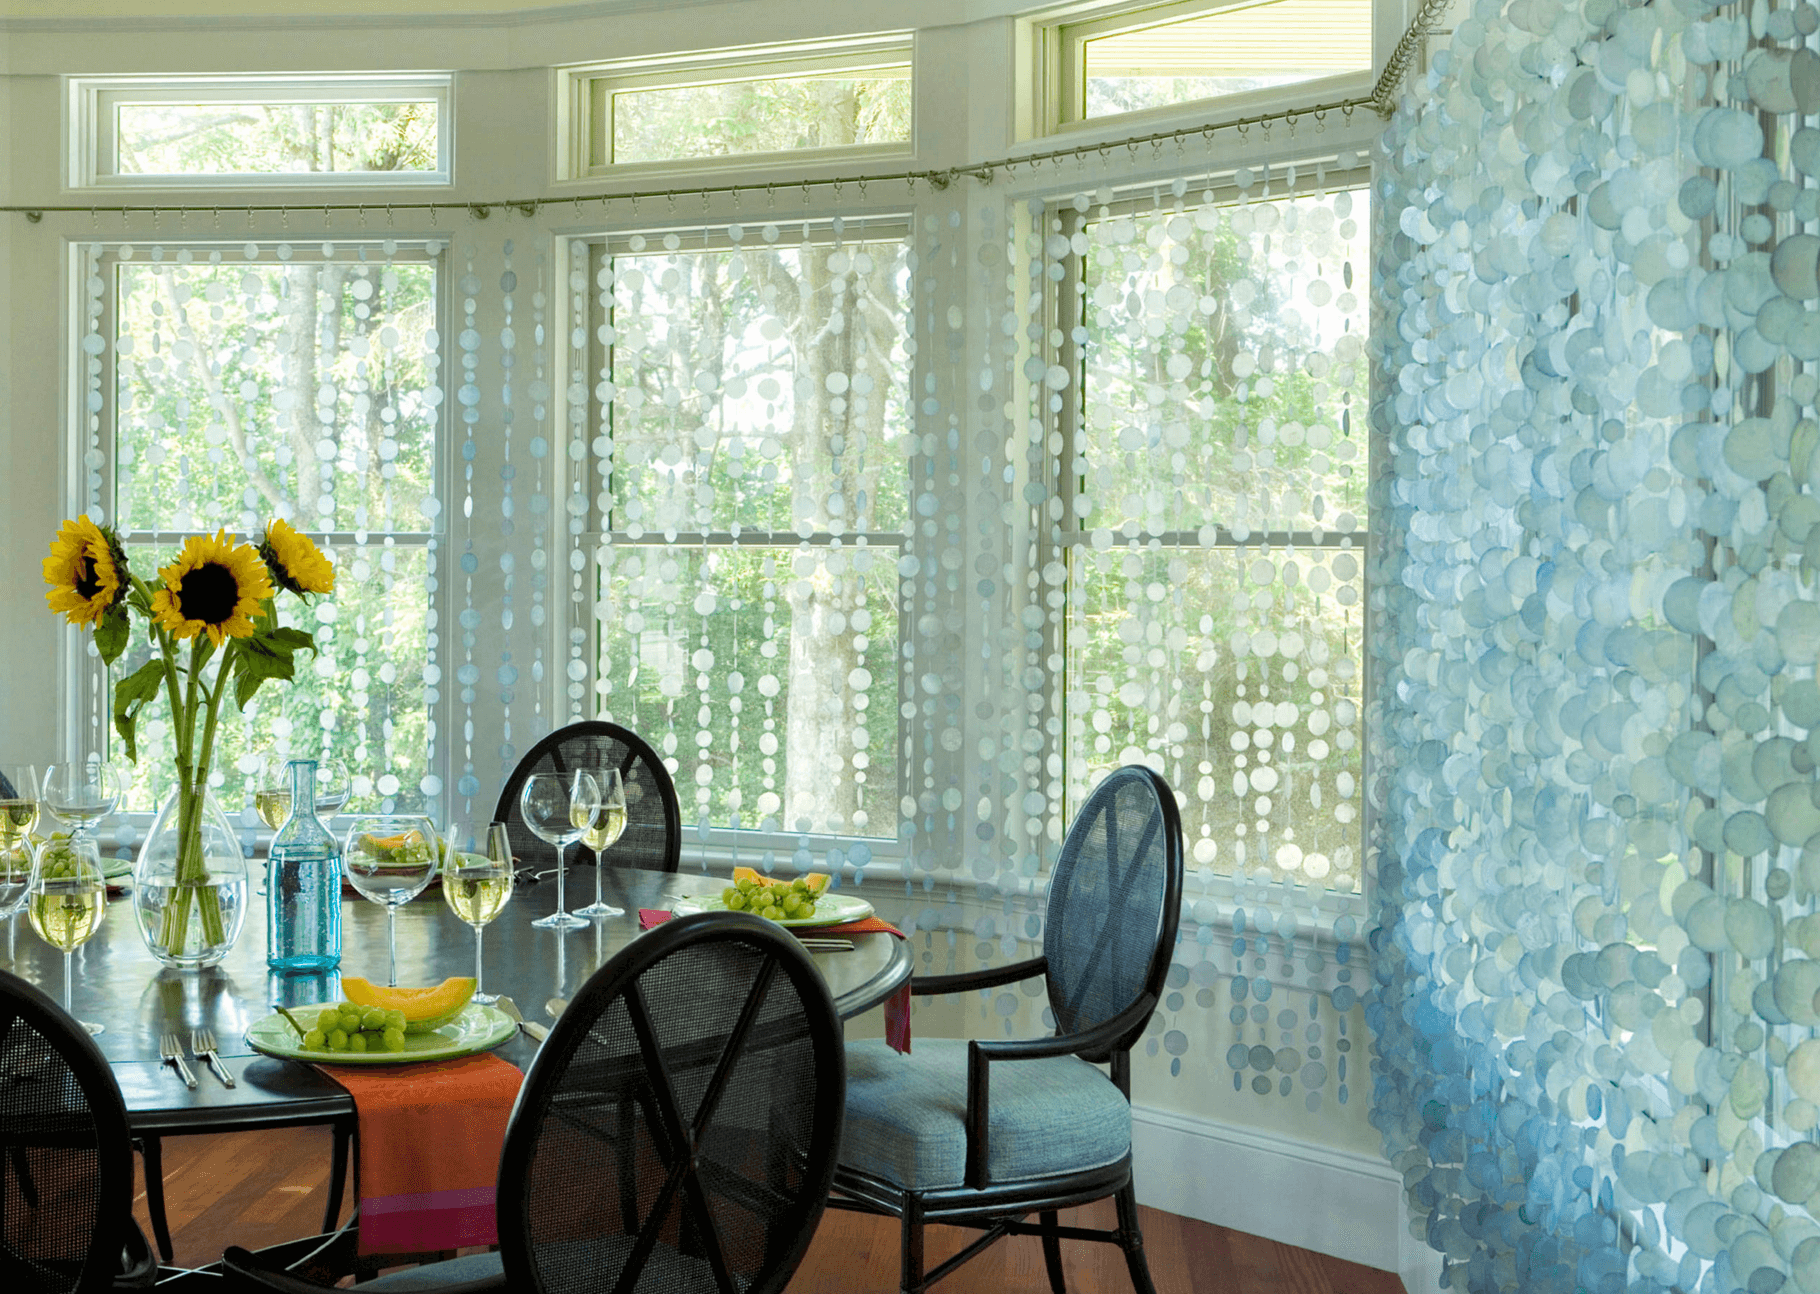 Modern window treatment ideas - Capiz Shell Curtains Modern Window Treatmentsmodern